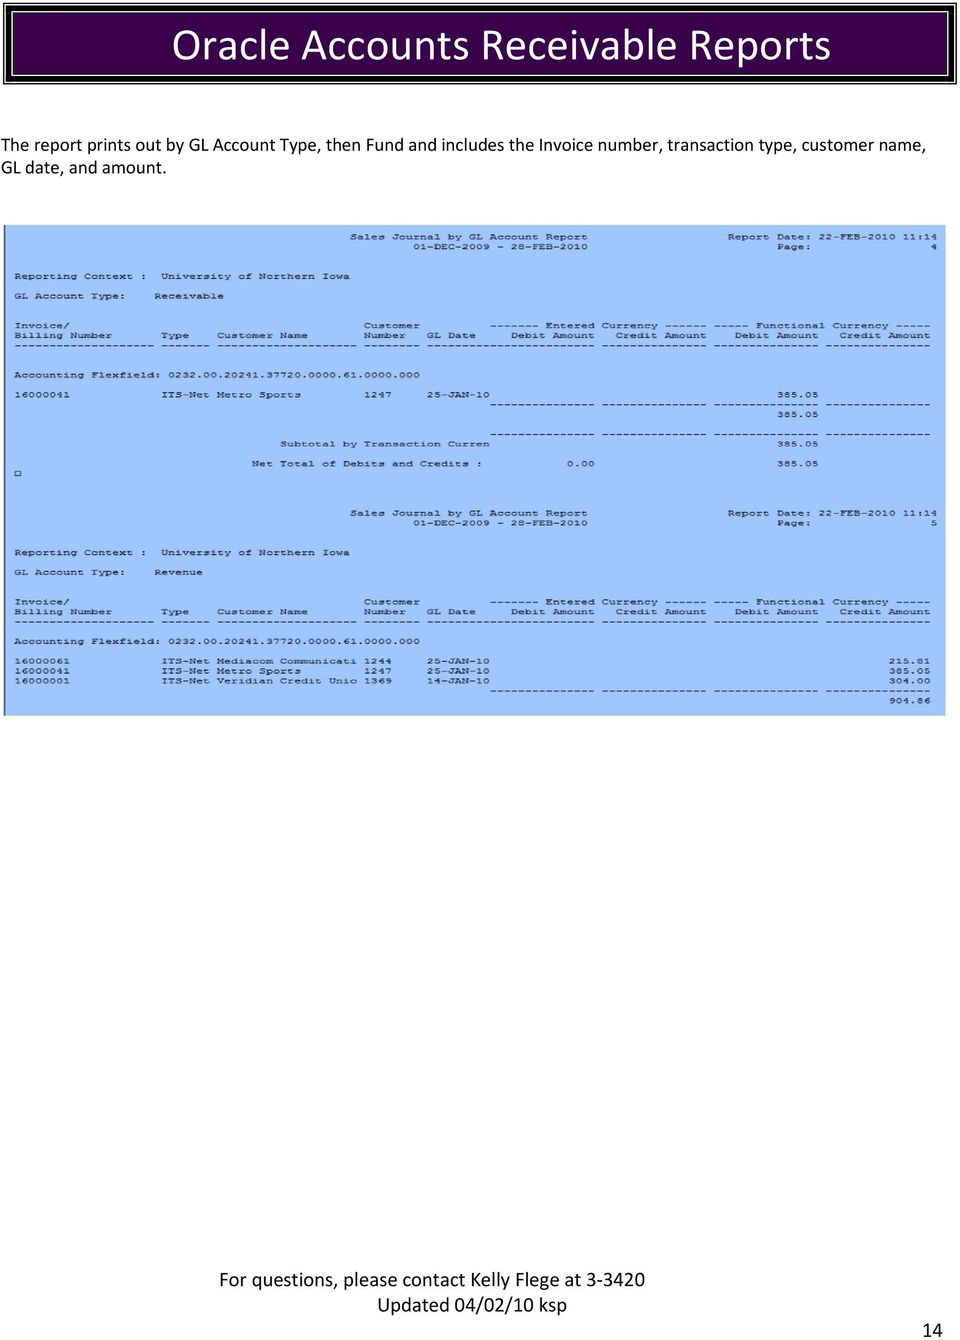 Invoice number, transaction type,